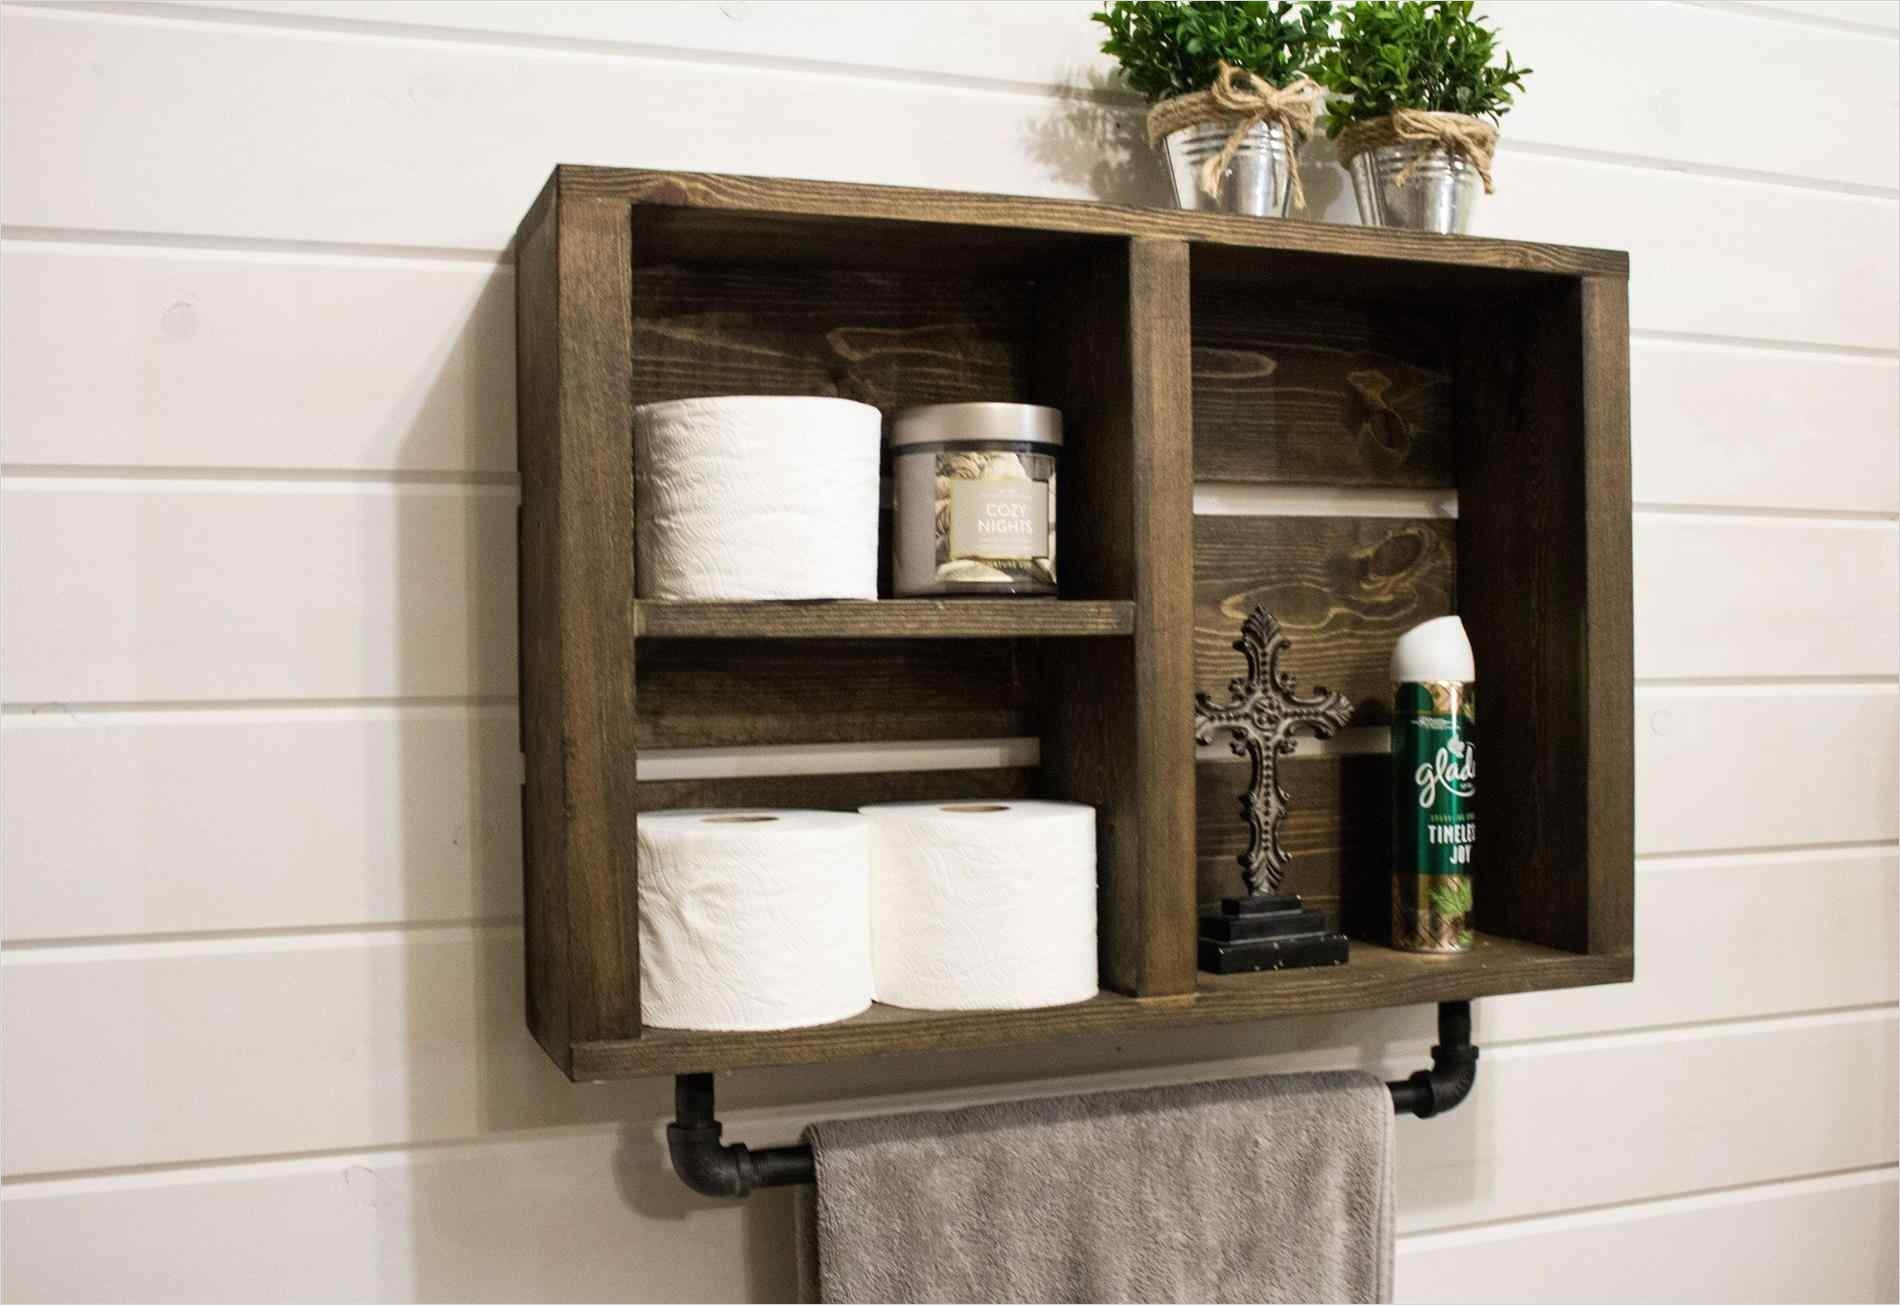 44 Creative Ideas Rustic Bathroom Walls Shelf 89 [nickbarron] 100 Rustic Bathroom Wall Shelves My Blog 9